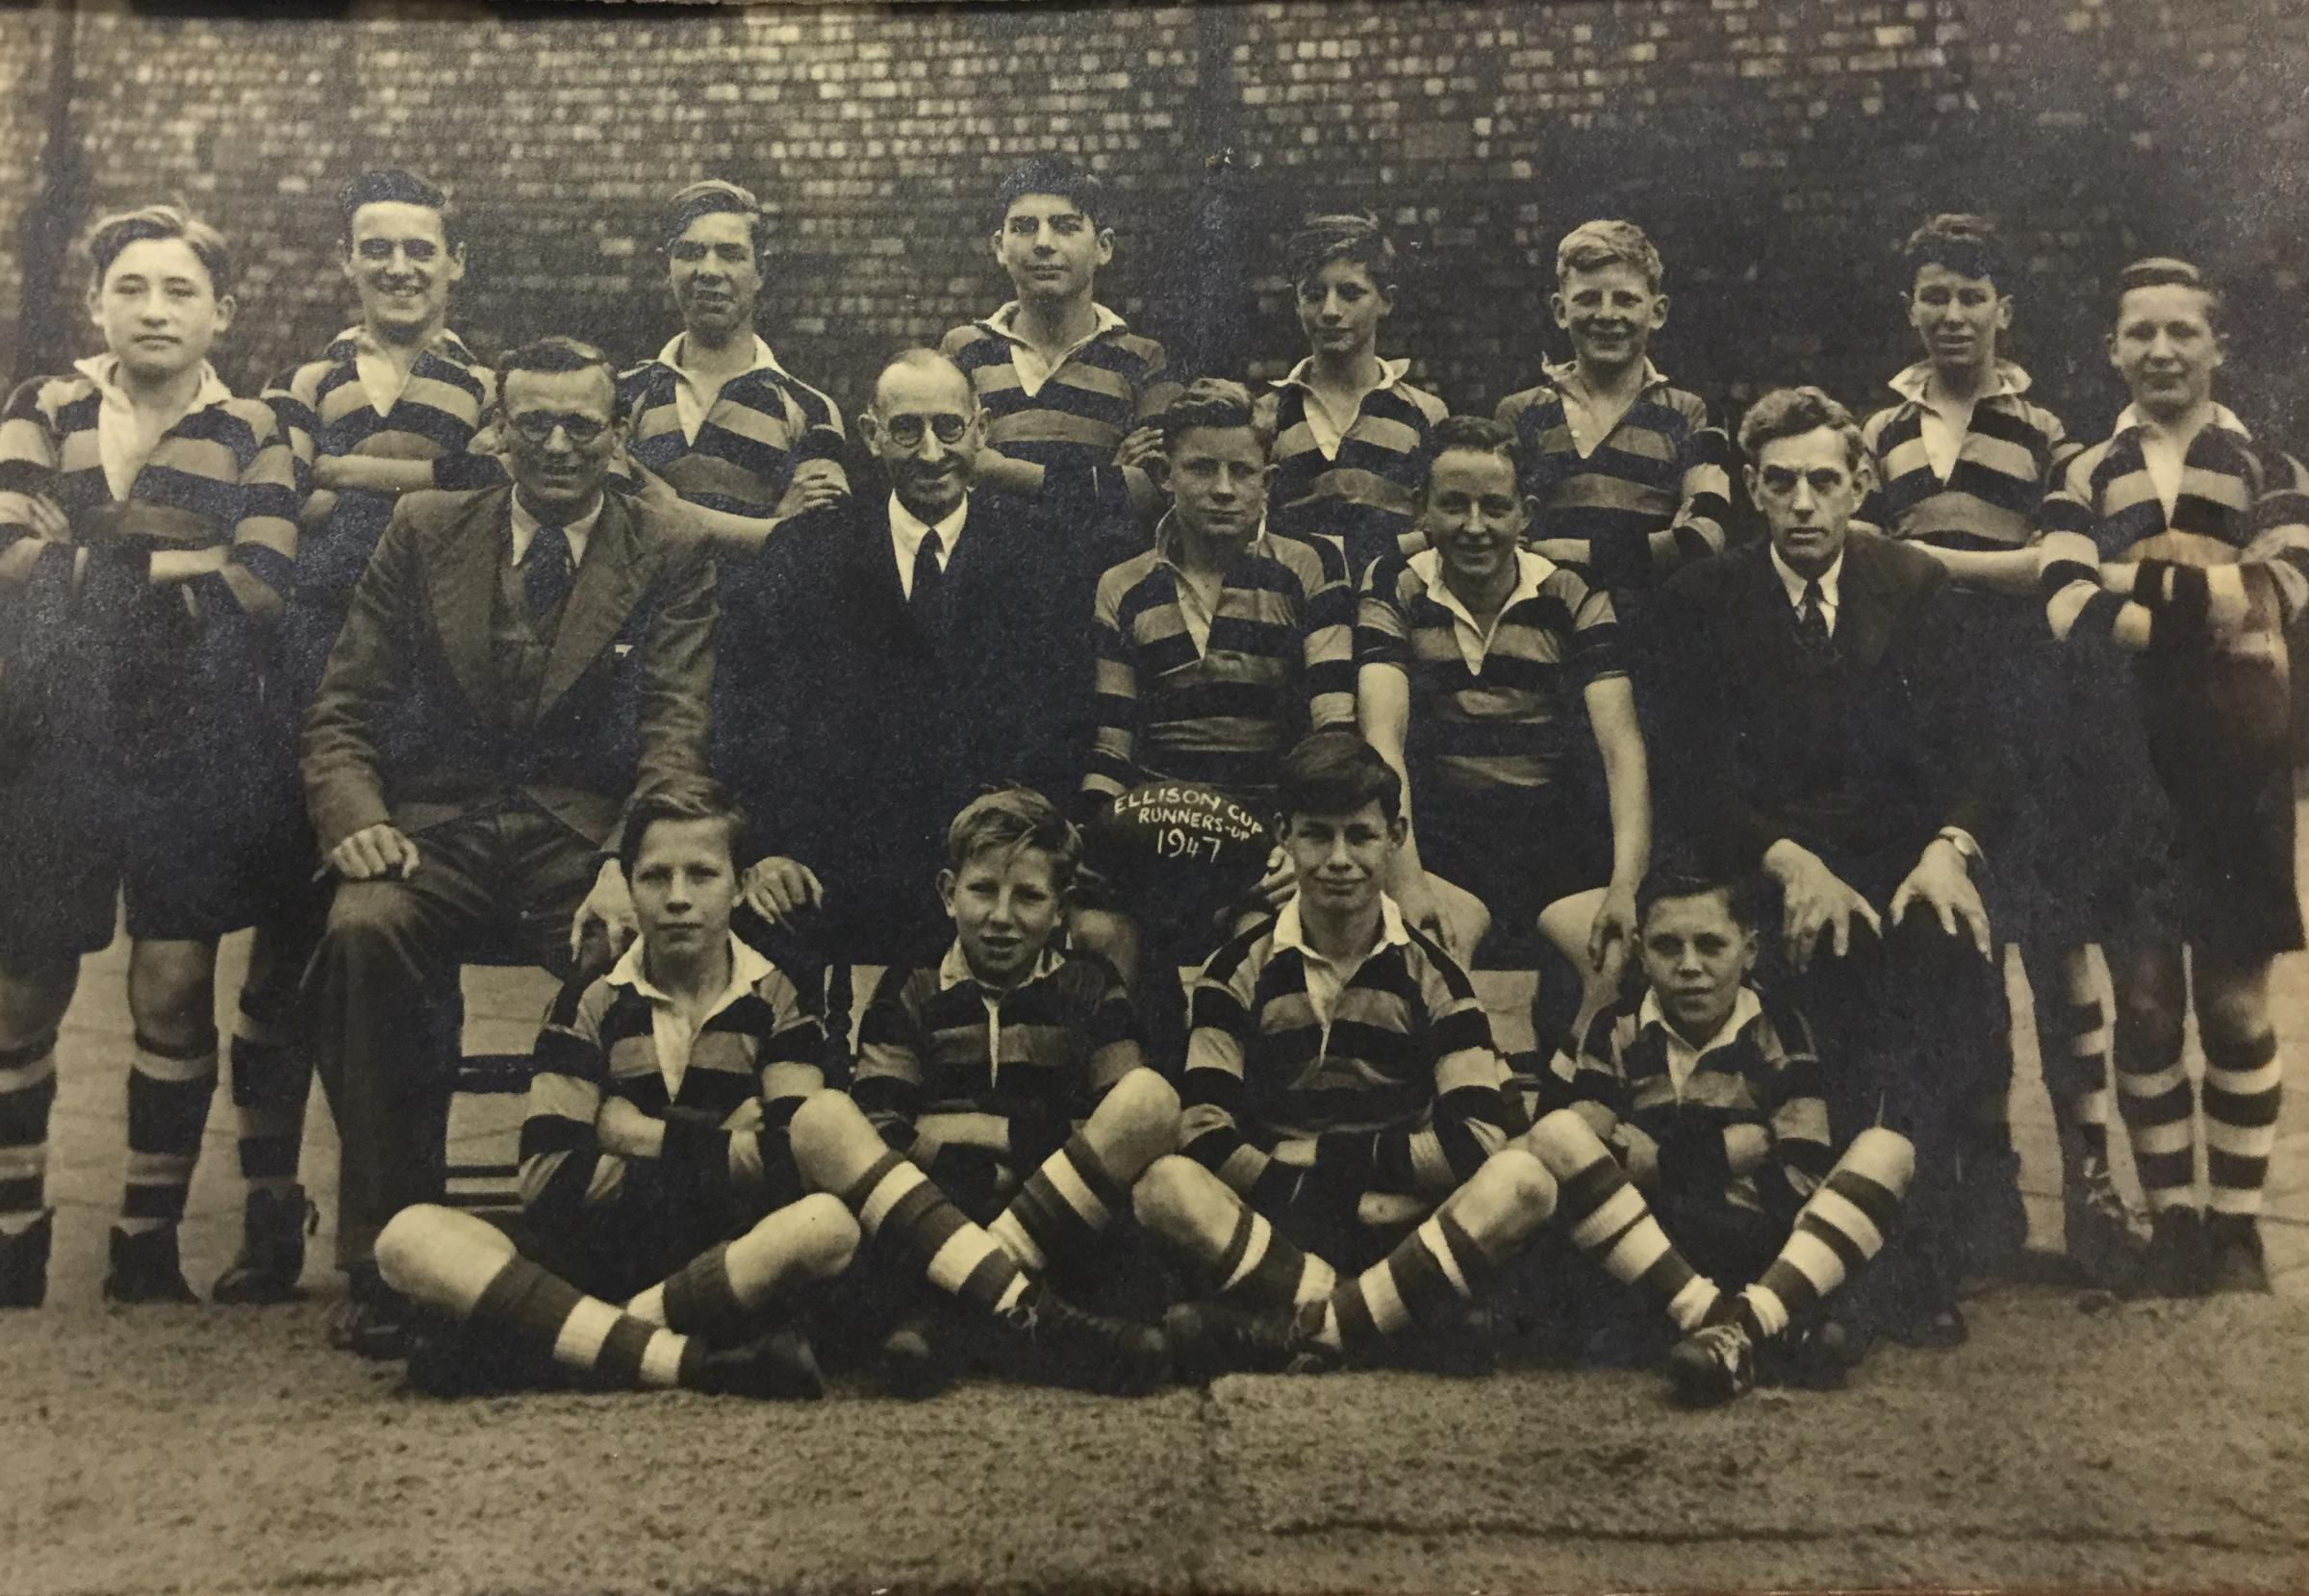 Do you recognise anyone in this brilliant old rugby team picture?